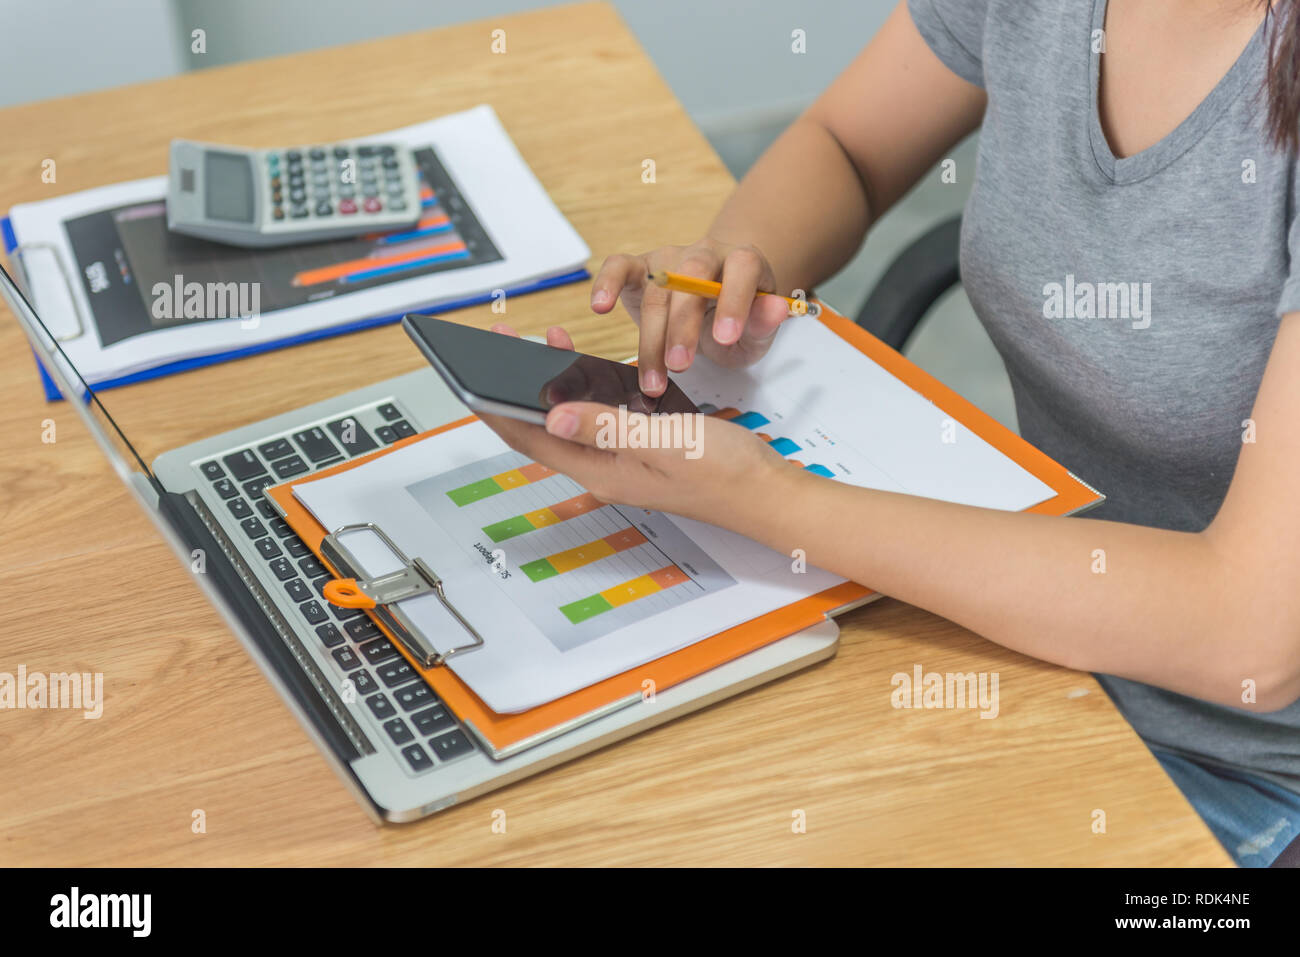 Woman finger tapping on smartphone screen while holding pencil - Stock Image